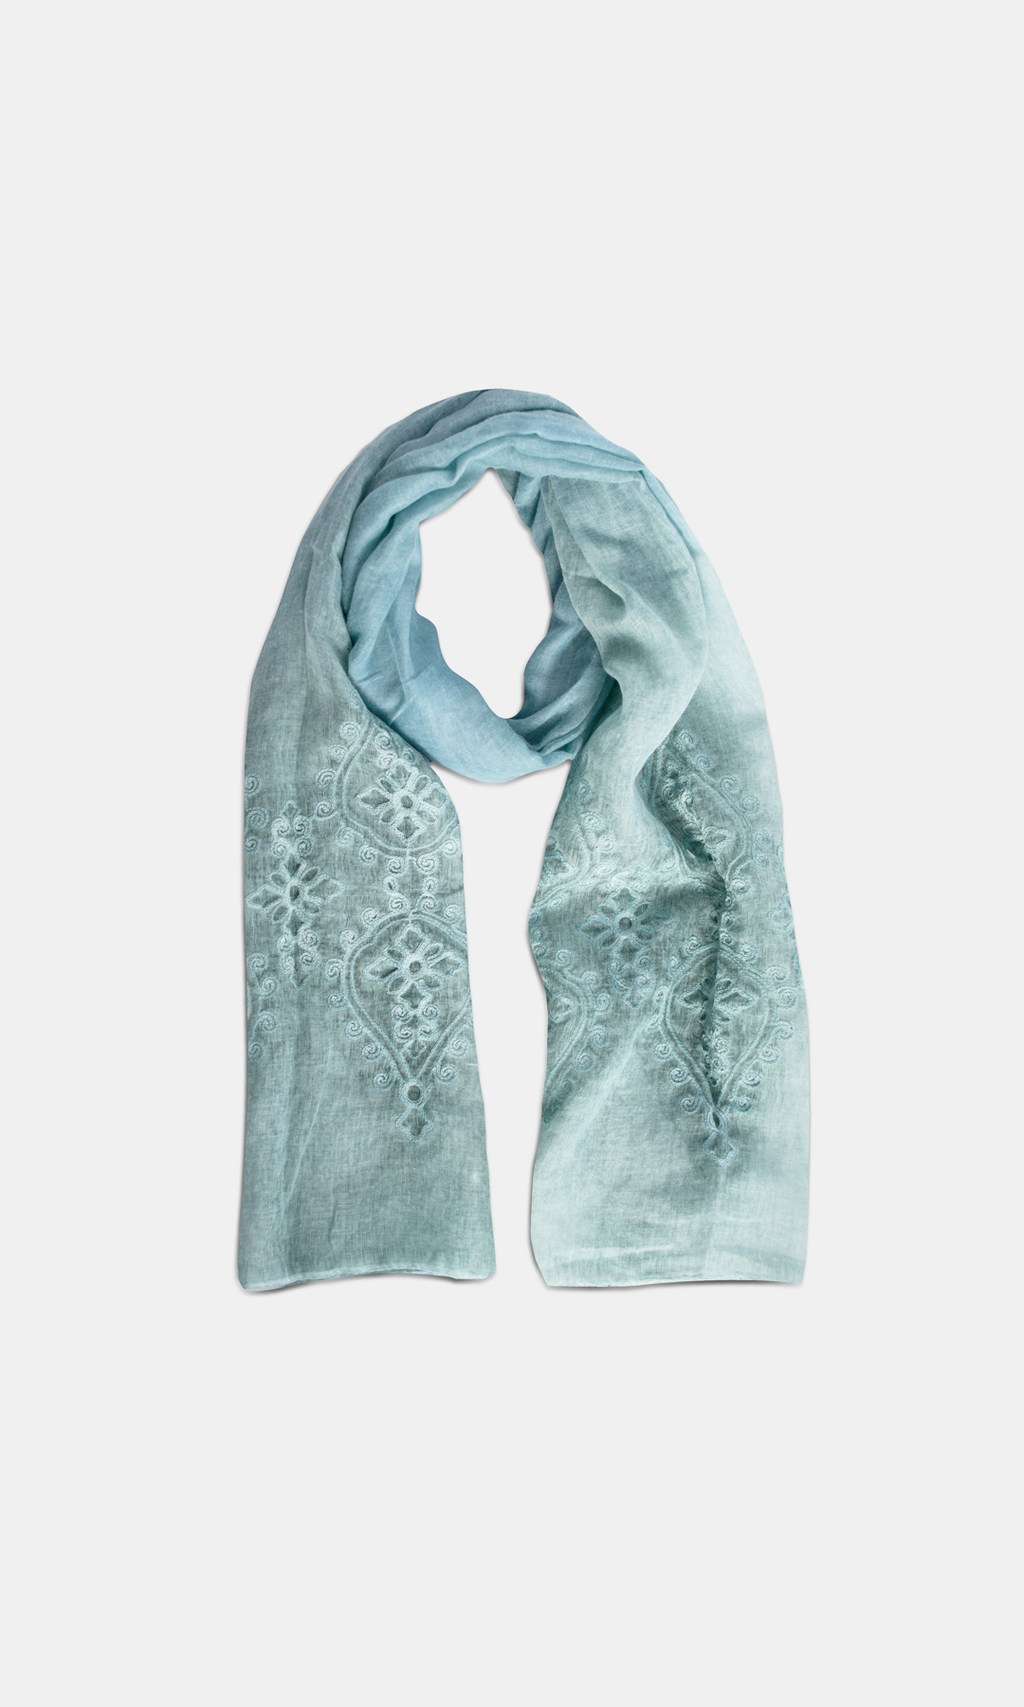 Viscose & Cotton Embroidered Pale Turquoise Scarf